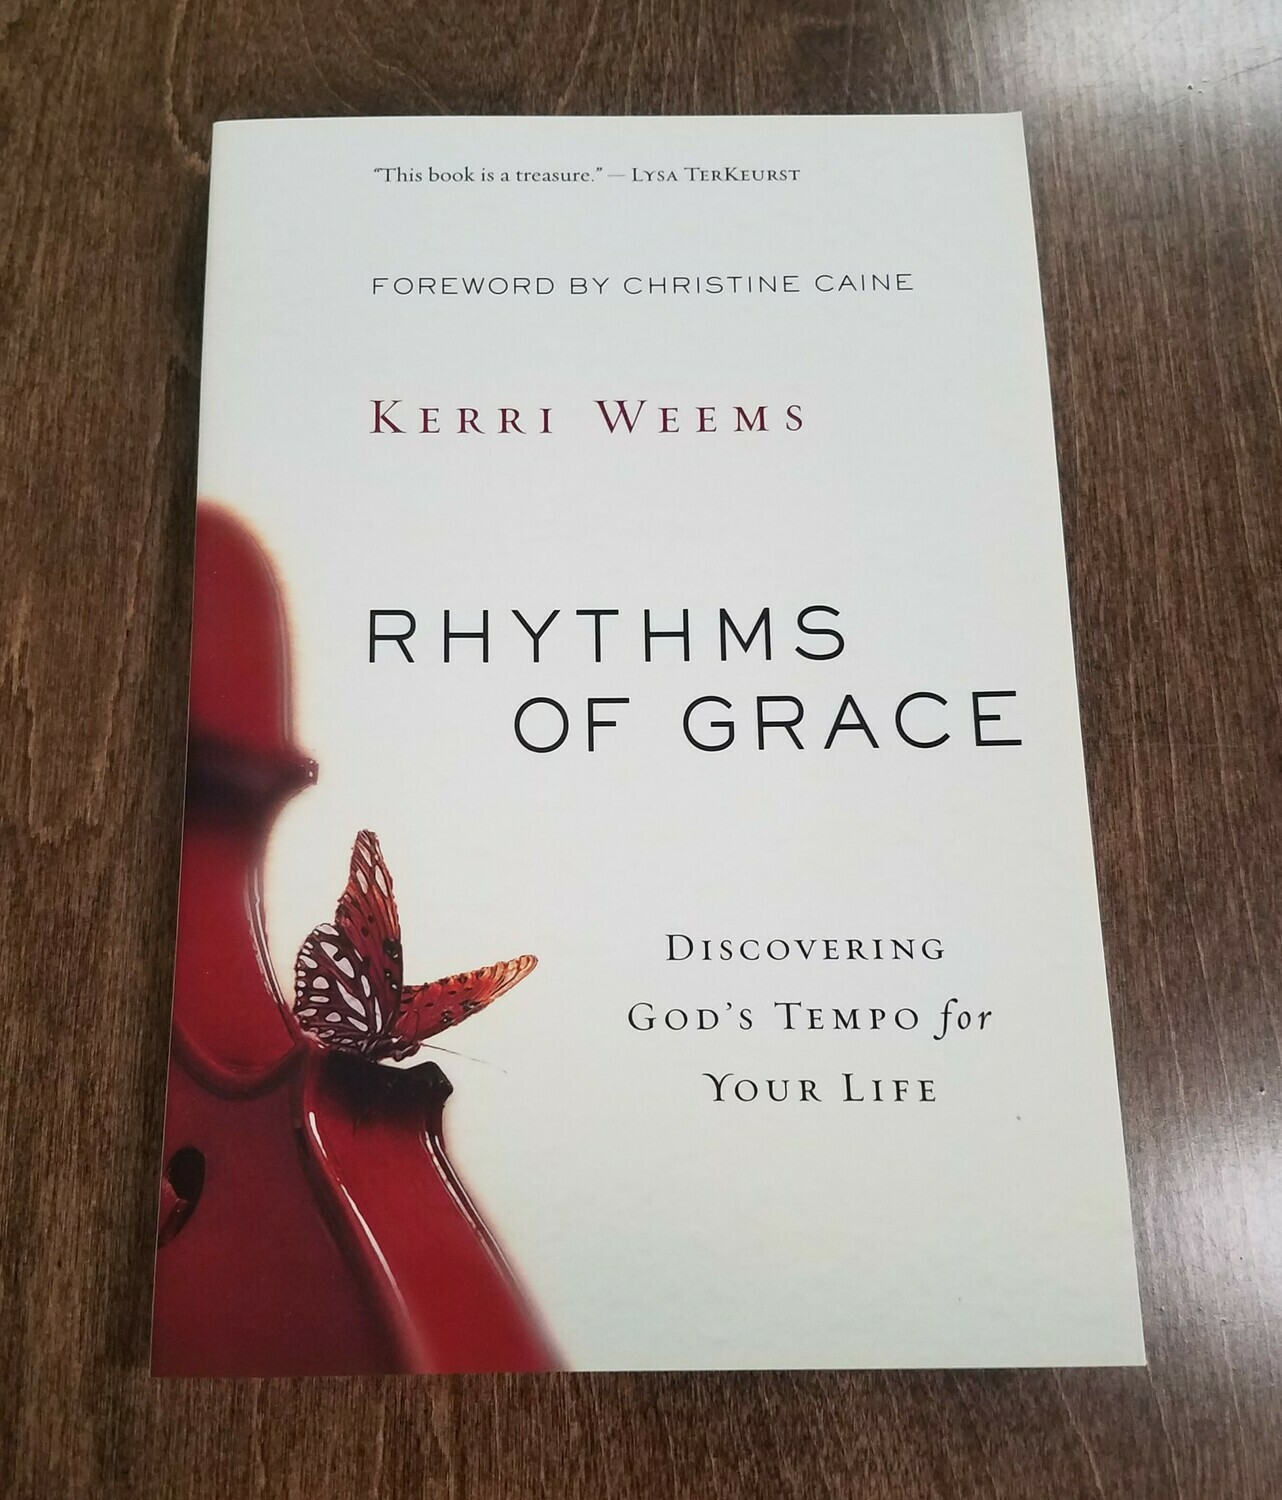 Rhythms of Grace by Kerri Weems